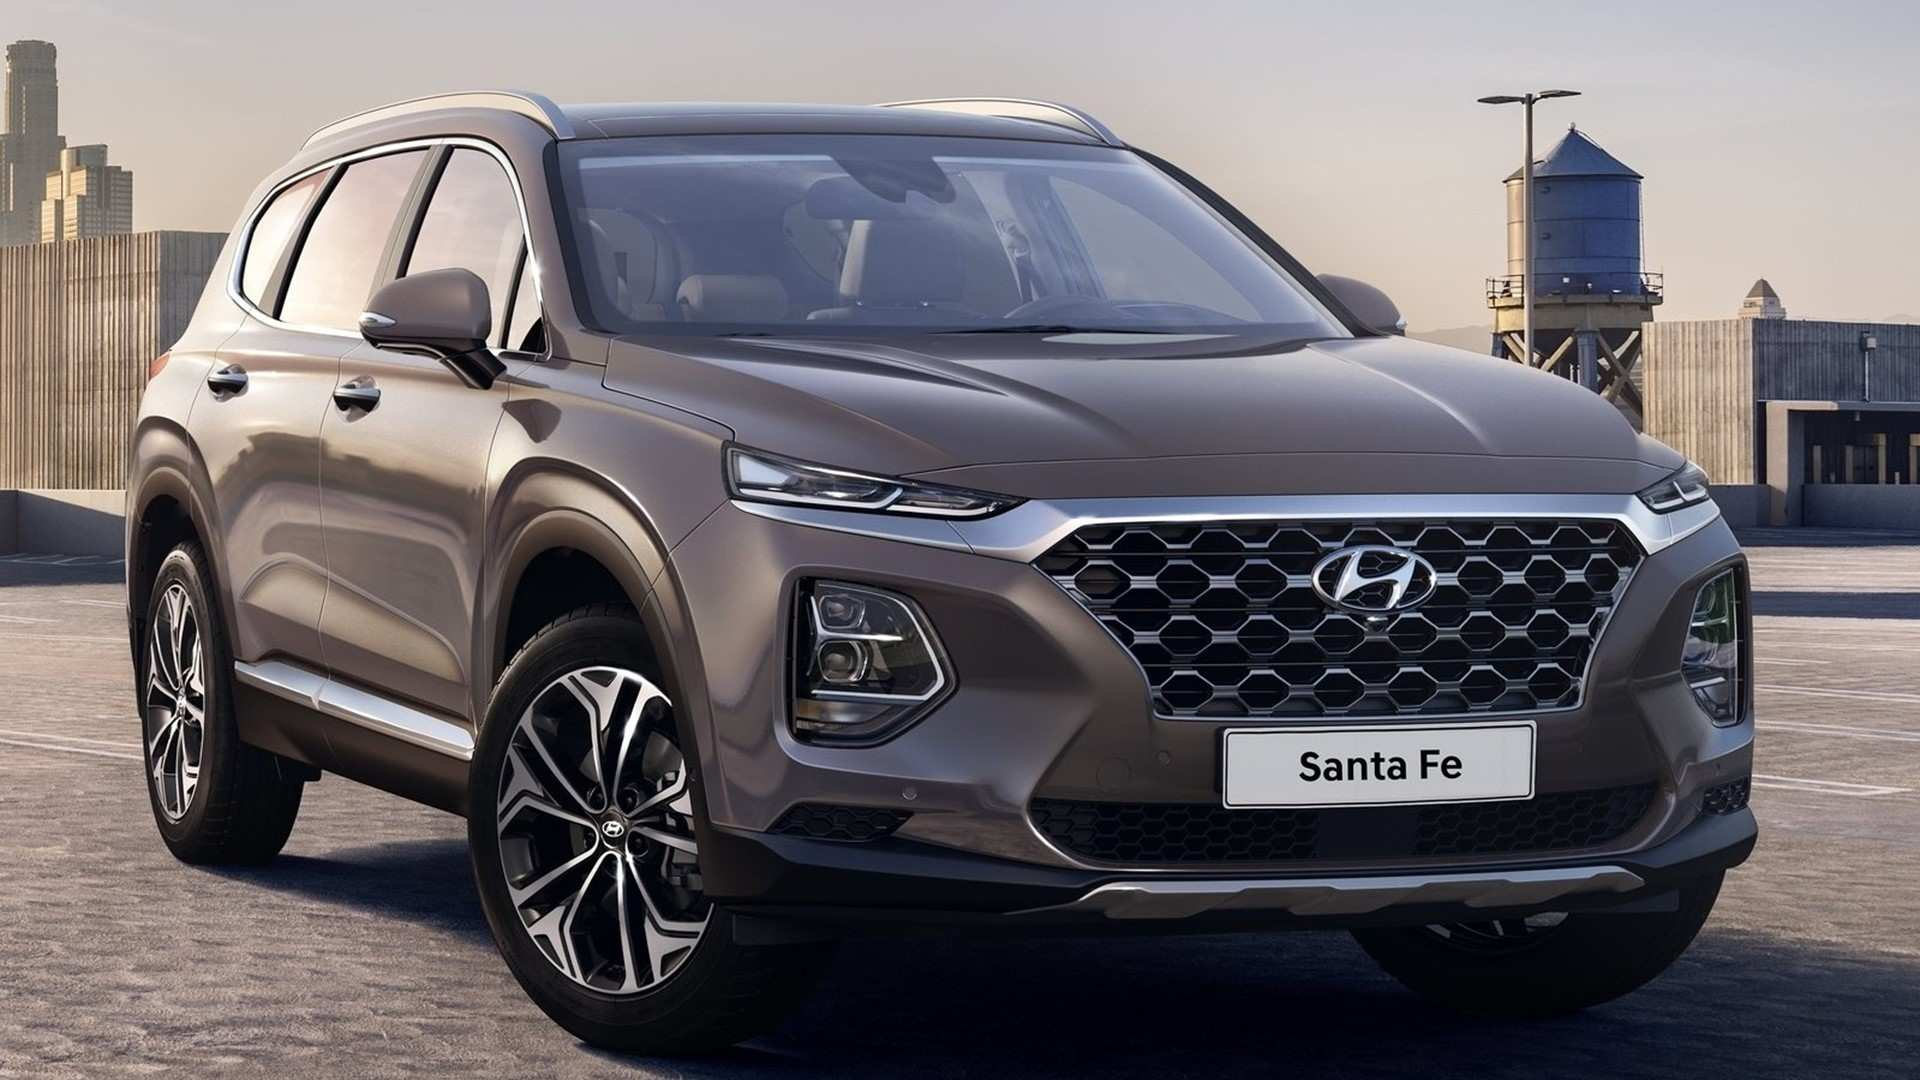 17 New 2019 Hyundai Santa Fe Exterior And Interior